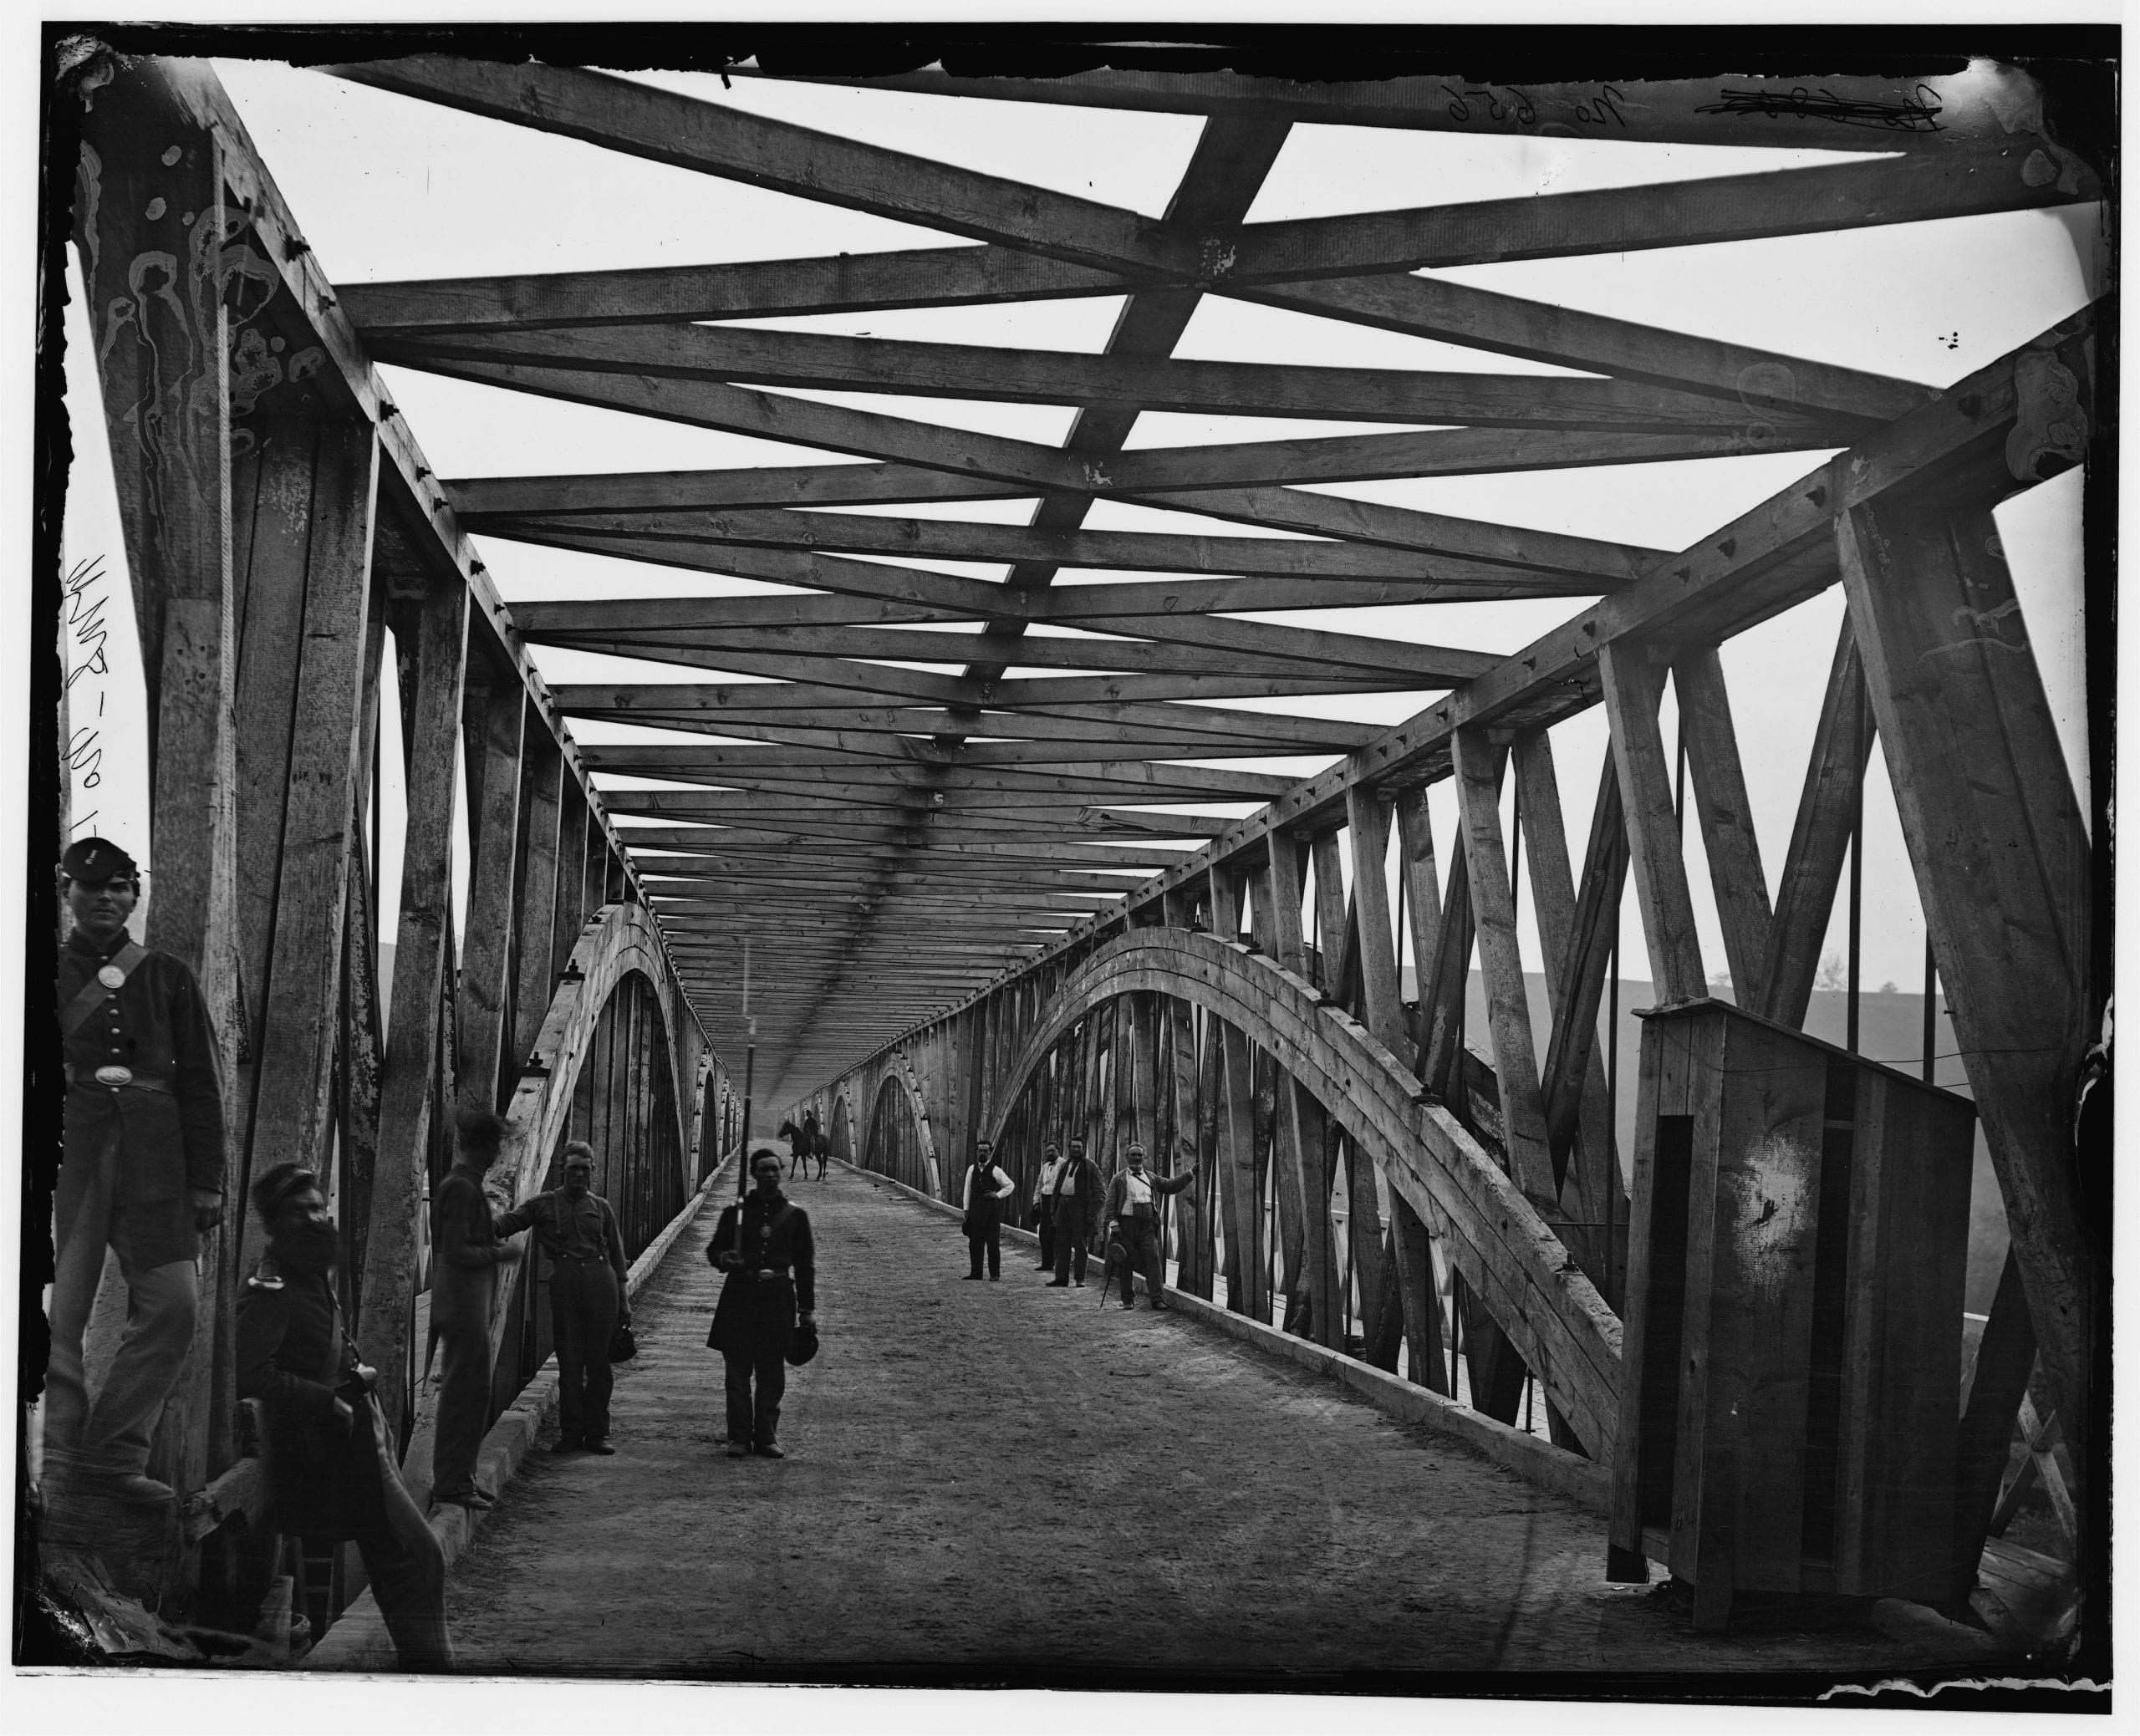 soldiers stand guard on Chain Bridge during the Civil War (Library of Congress)